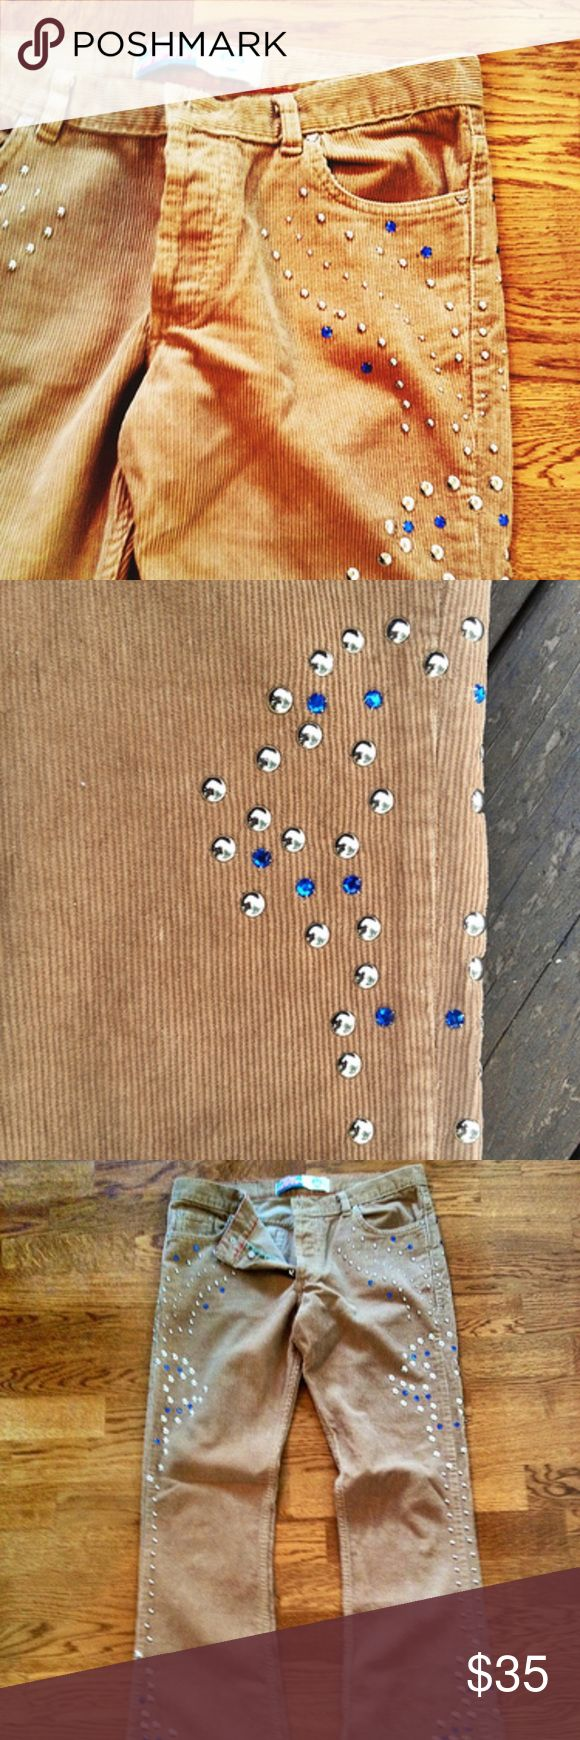 Vintage Inspired Kosiuko Corduroys These are vintage Inspired brown thin corduroy bell bottoms. They are so flattering' they have silver and blue tacks on the side for some flare. Great condition. Jeans Flare & Wide Leg